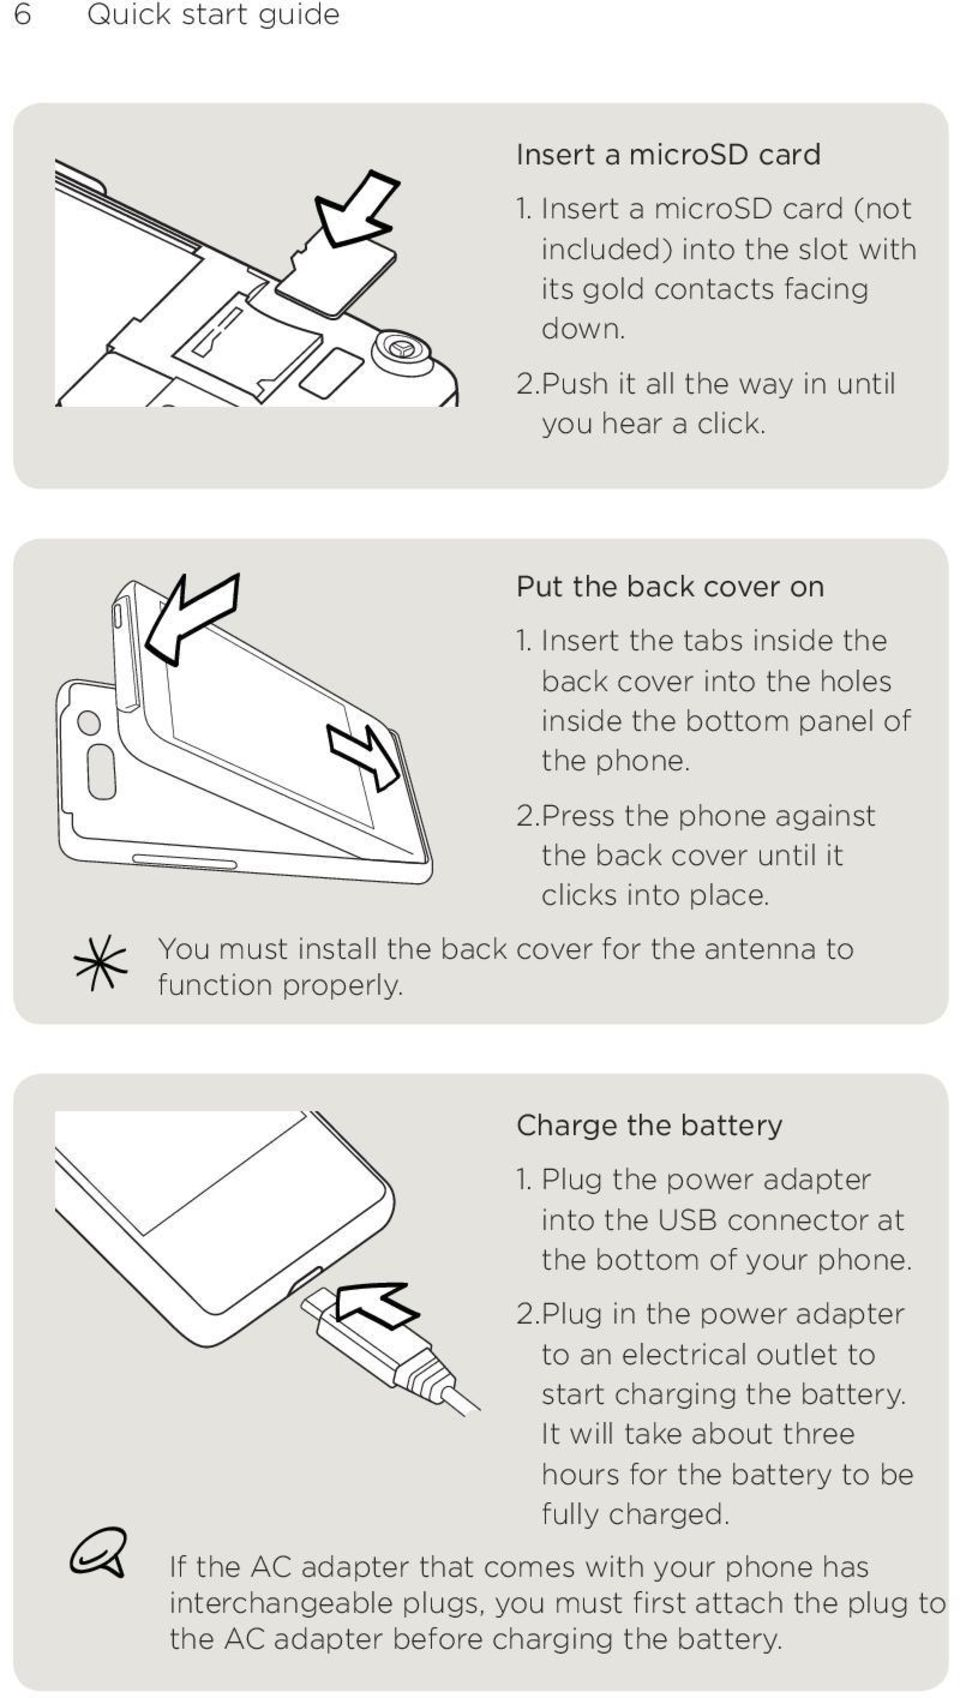 You must install the back cover for the antenna to function properly. Charge the battery 1. Plug the power adapter into the USB connector at the bottom of your phone.